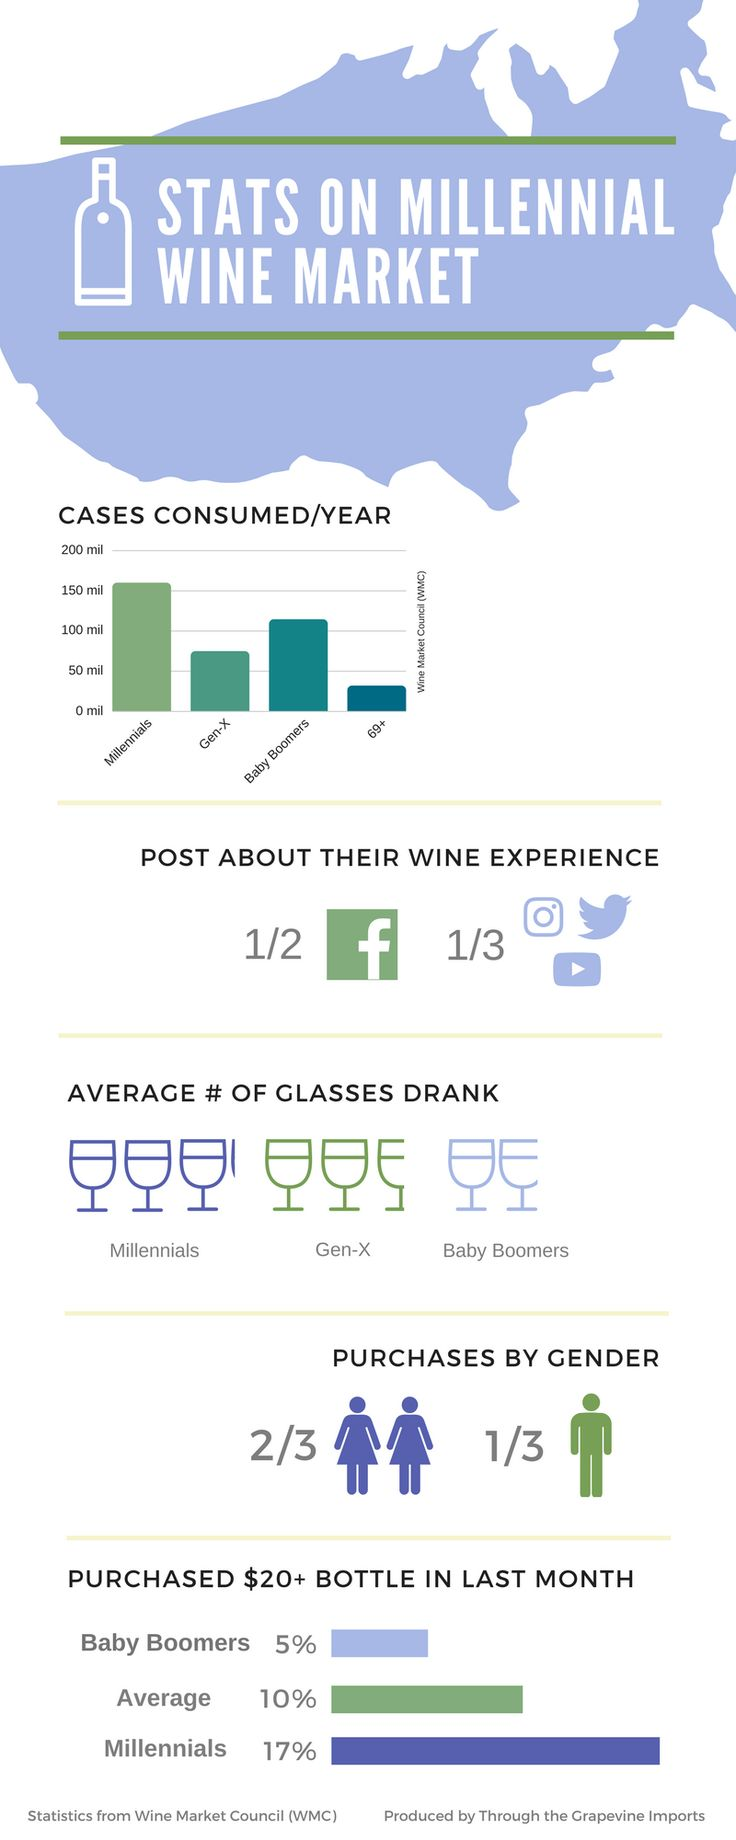 Statistics on the Millennial Wine Market If you work in the wine industry as a distributor, retailer, or a generally curious wine consumer, it's pretty obvious the influence that millennials are currently having on the wine market in the US. Millennials drink more wine than any other generation and are highly likely to use social media to share their experience and find reviews.